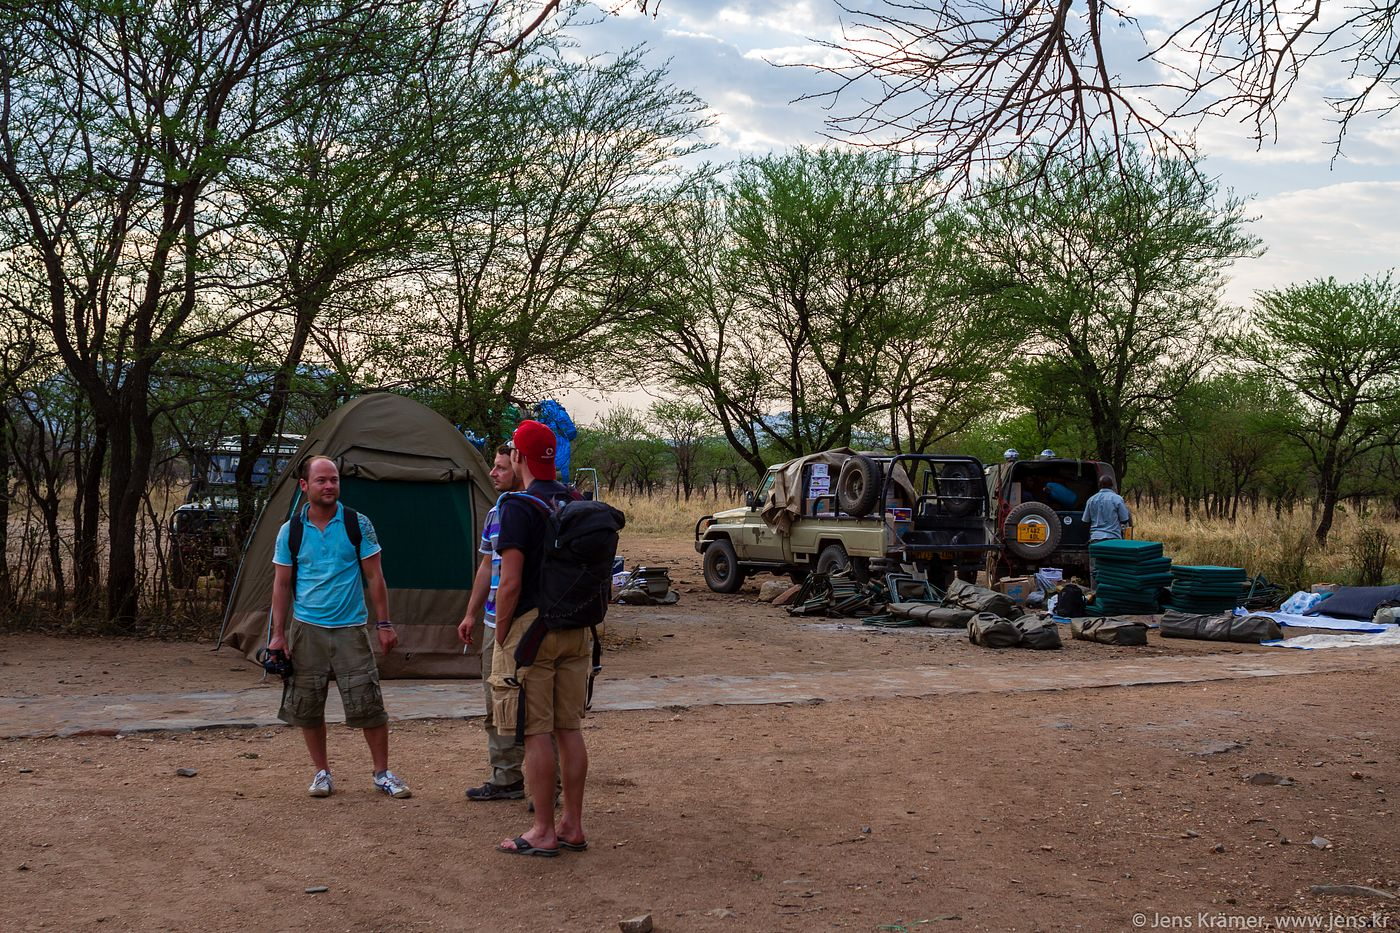 Our camp site in Serengeti National Park